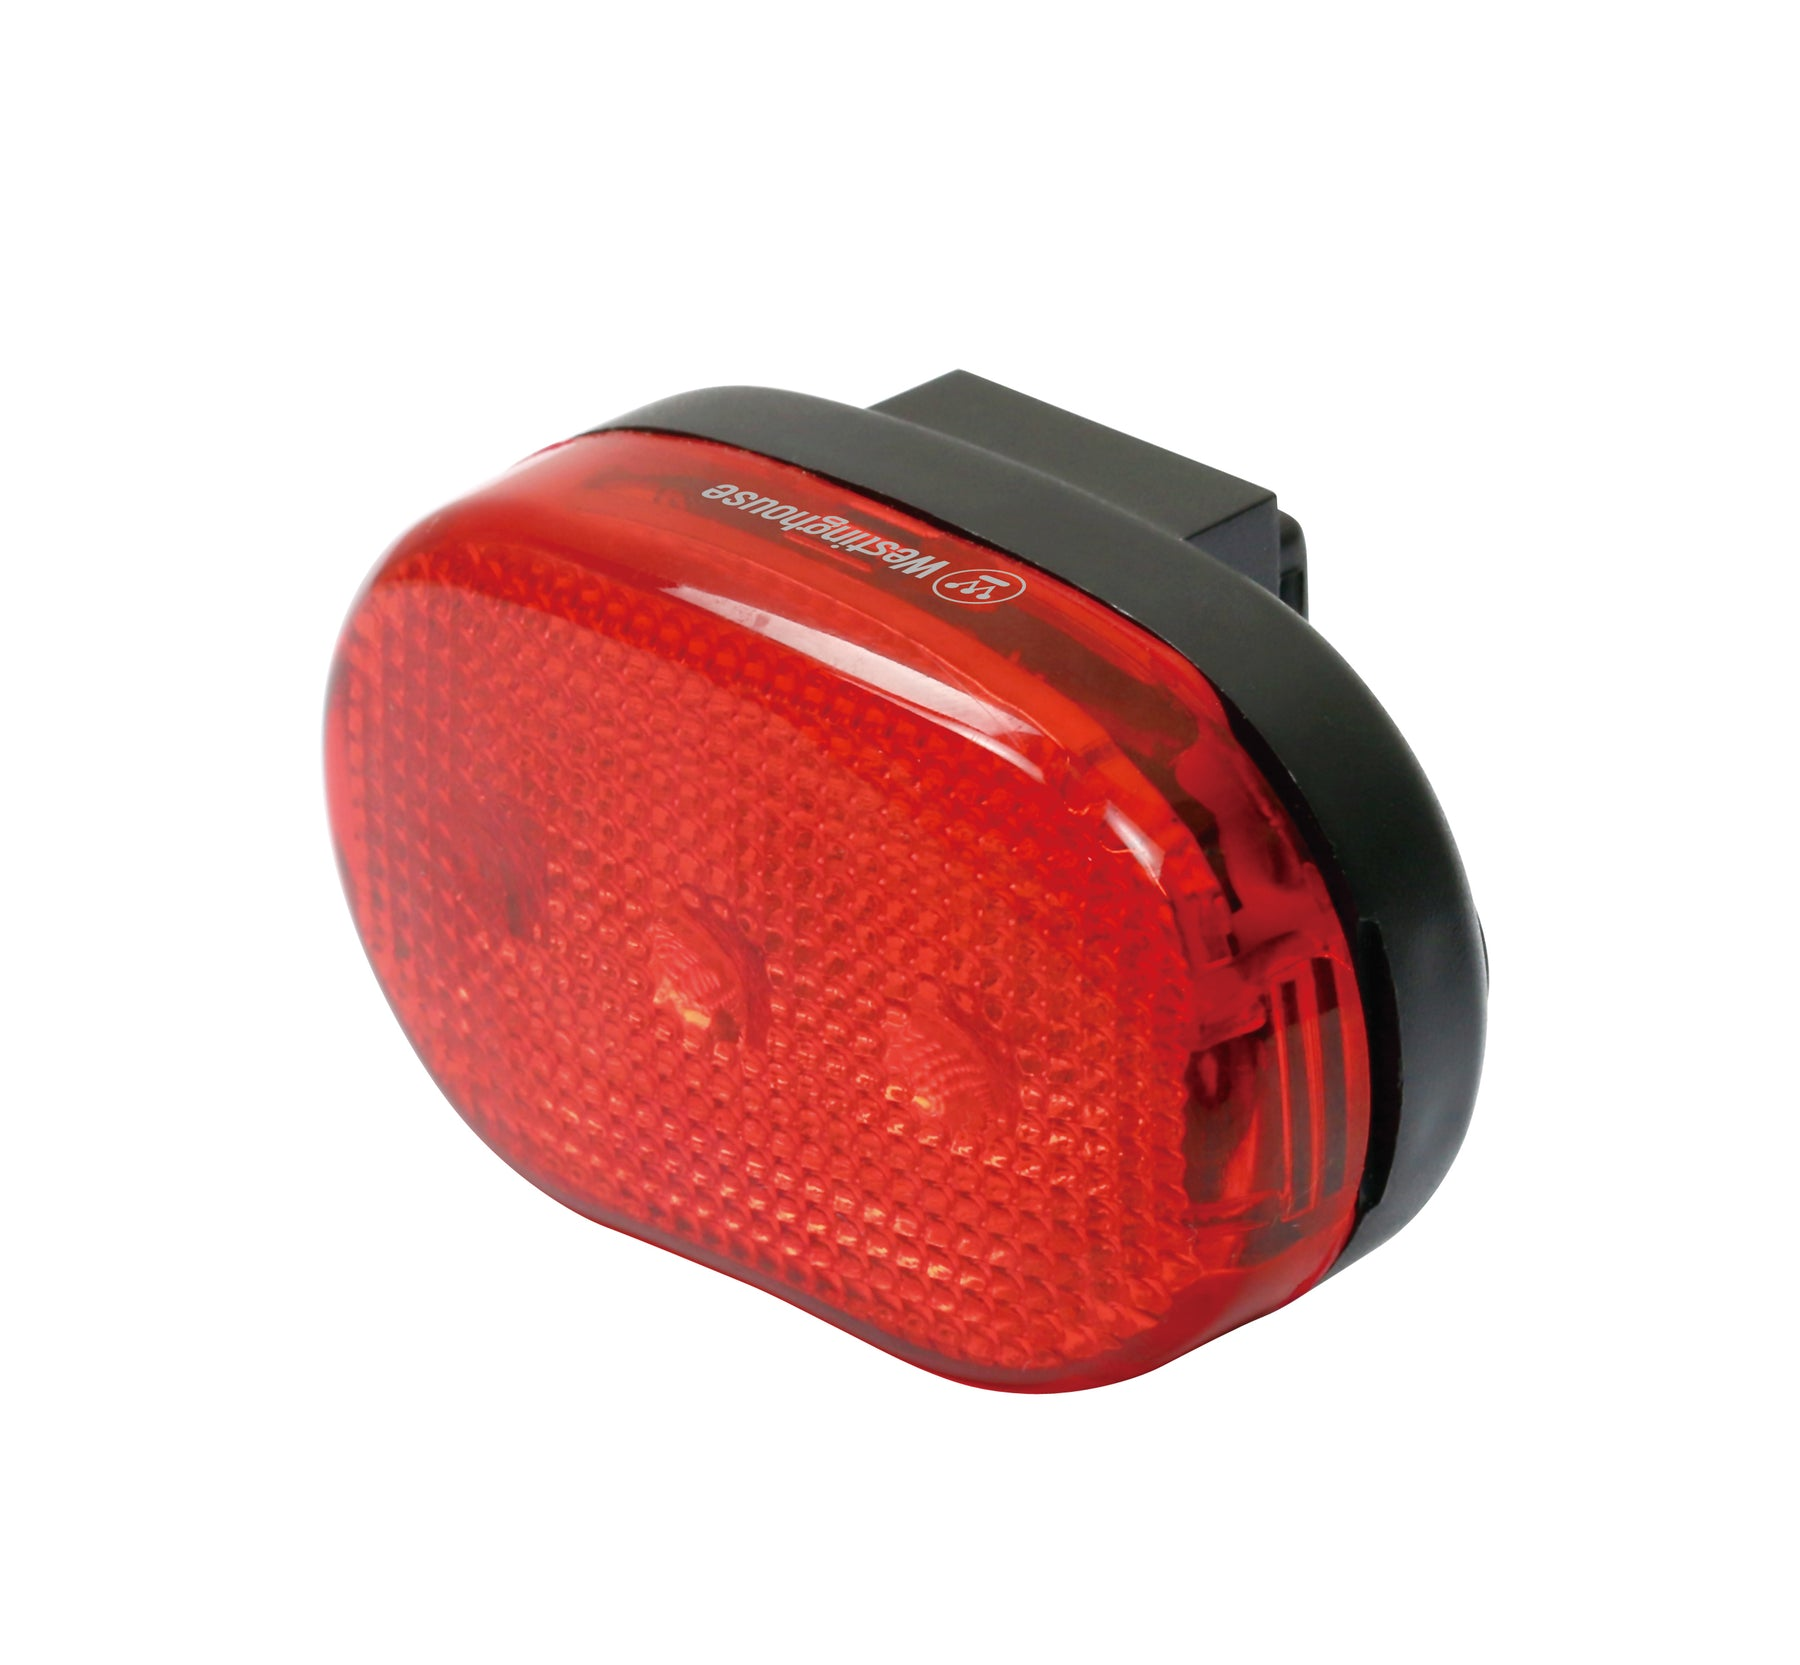 wholesale, wholesale batteries, 3 LED bike light, bike light, bicycle light, safety light, night light